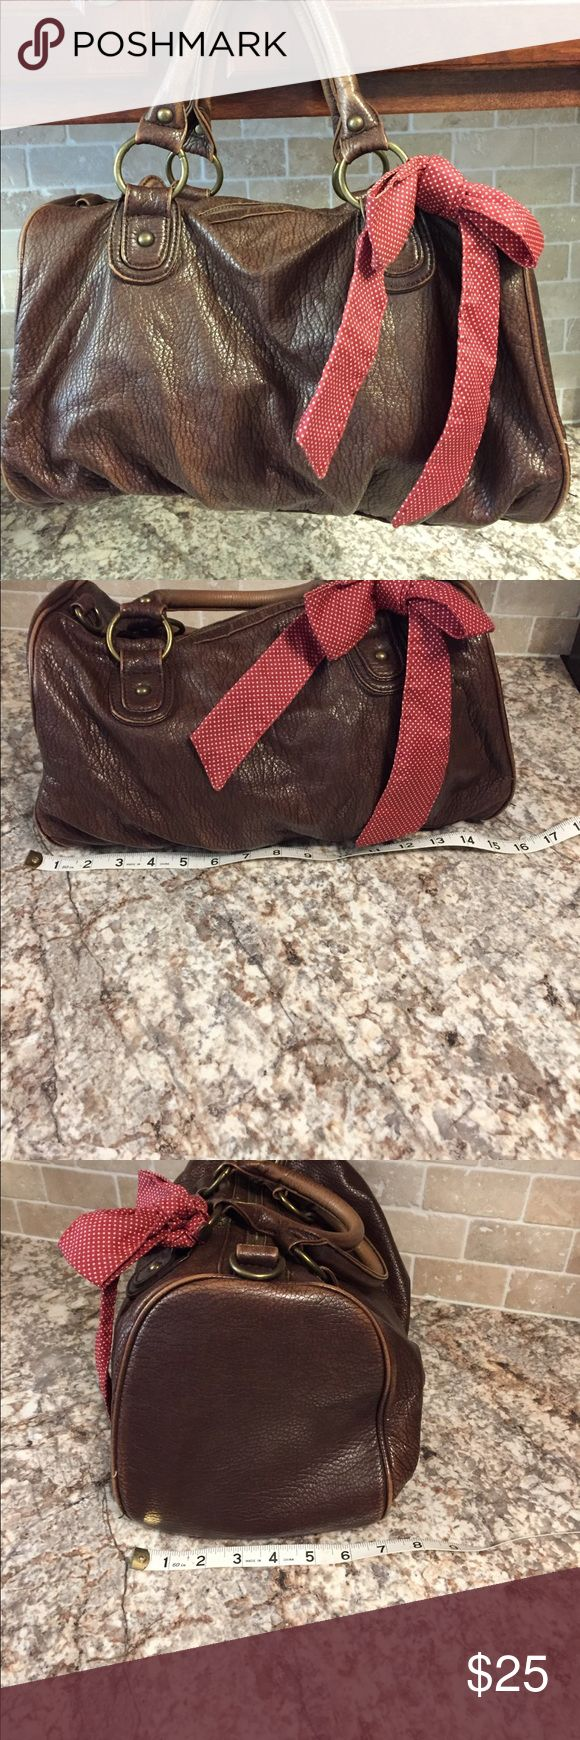 American eagle AE brown leather handbag. Super soft leather handbag from AE.  The color is a deep chocolate brown, bronze hardware. The interior is red polka dot and there is a matching (removal) bow on the handle. Excellent condition American Eagle Outfitters Bags